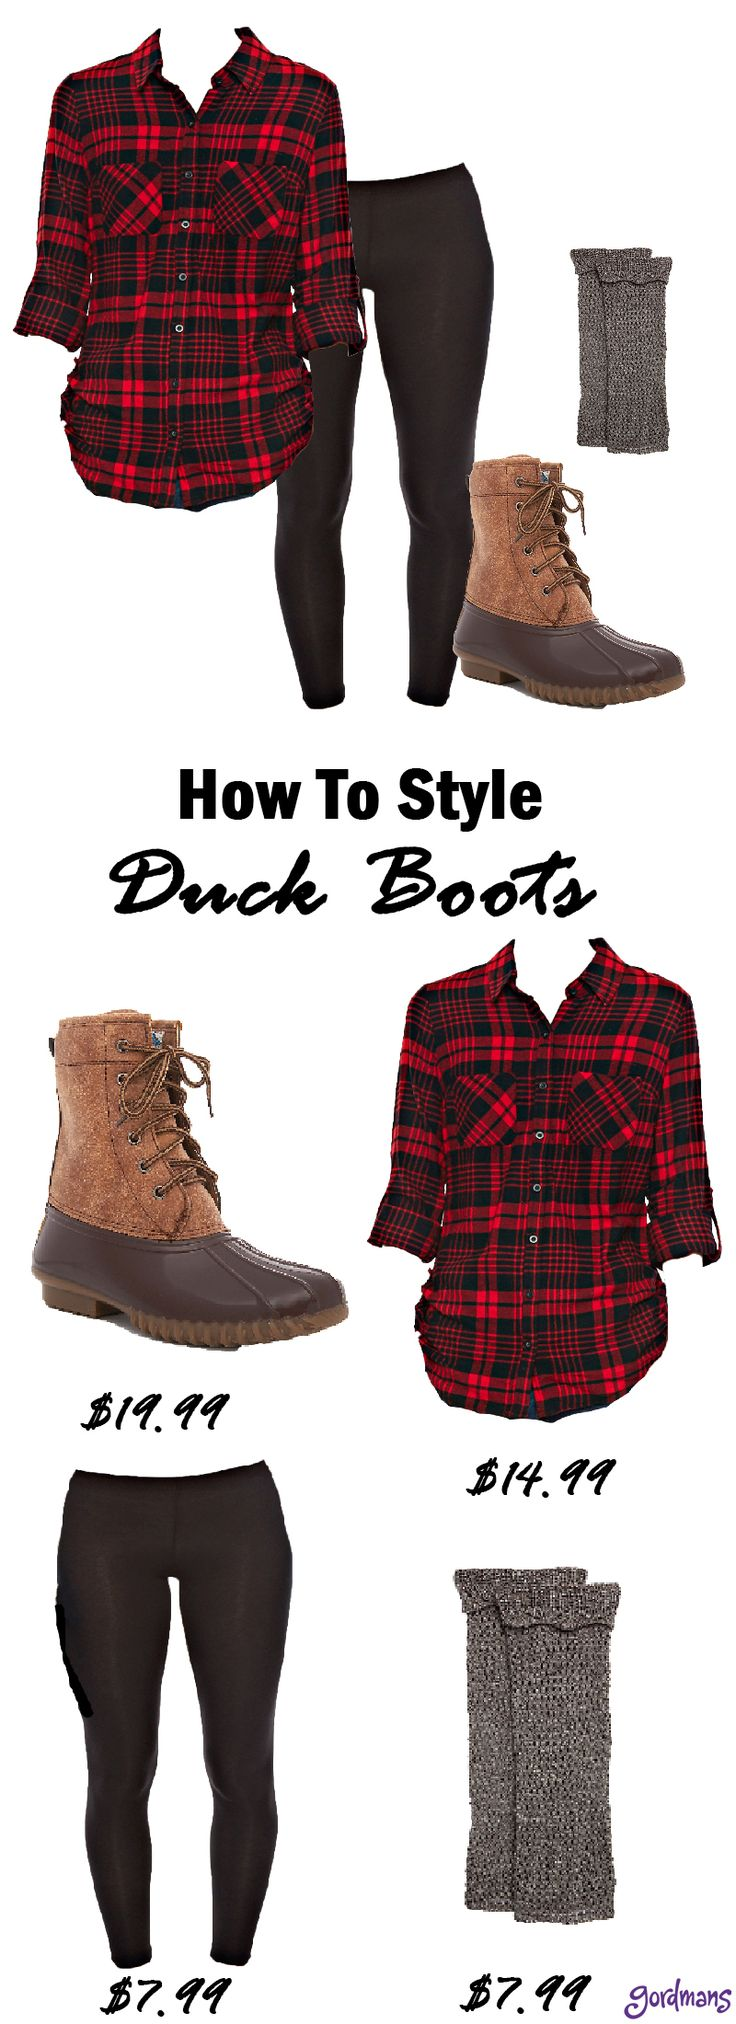 Duck boots are so in! Style these on a rainy day, a snowy day, or even a sunny day! They look great with a pair of comfy leggings and the perfect plaid button up!